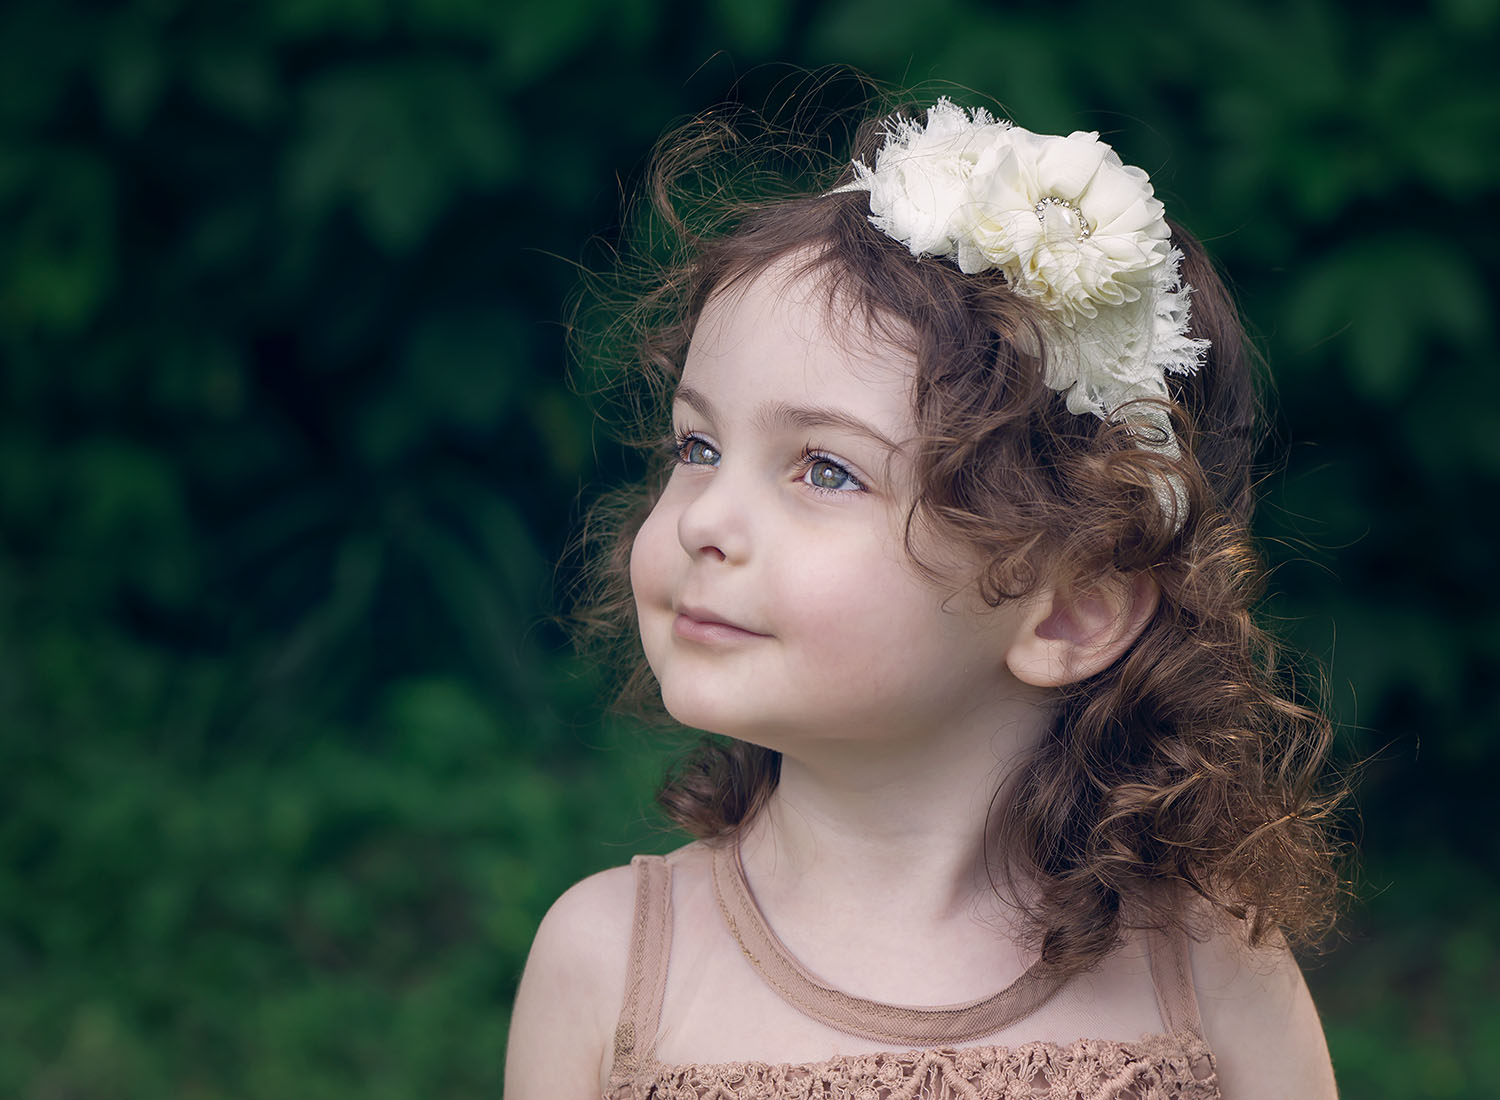 Dreamy portrait of girl wearing lacy headband gazing off camera